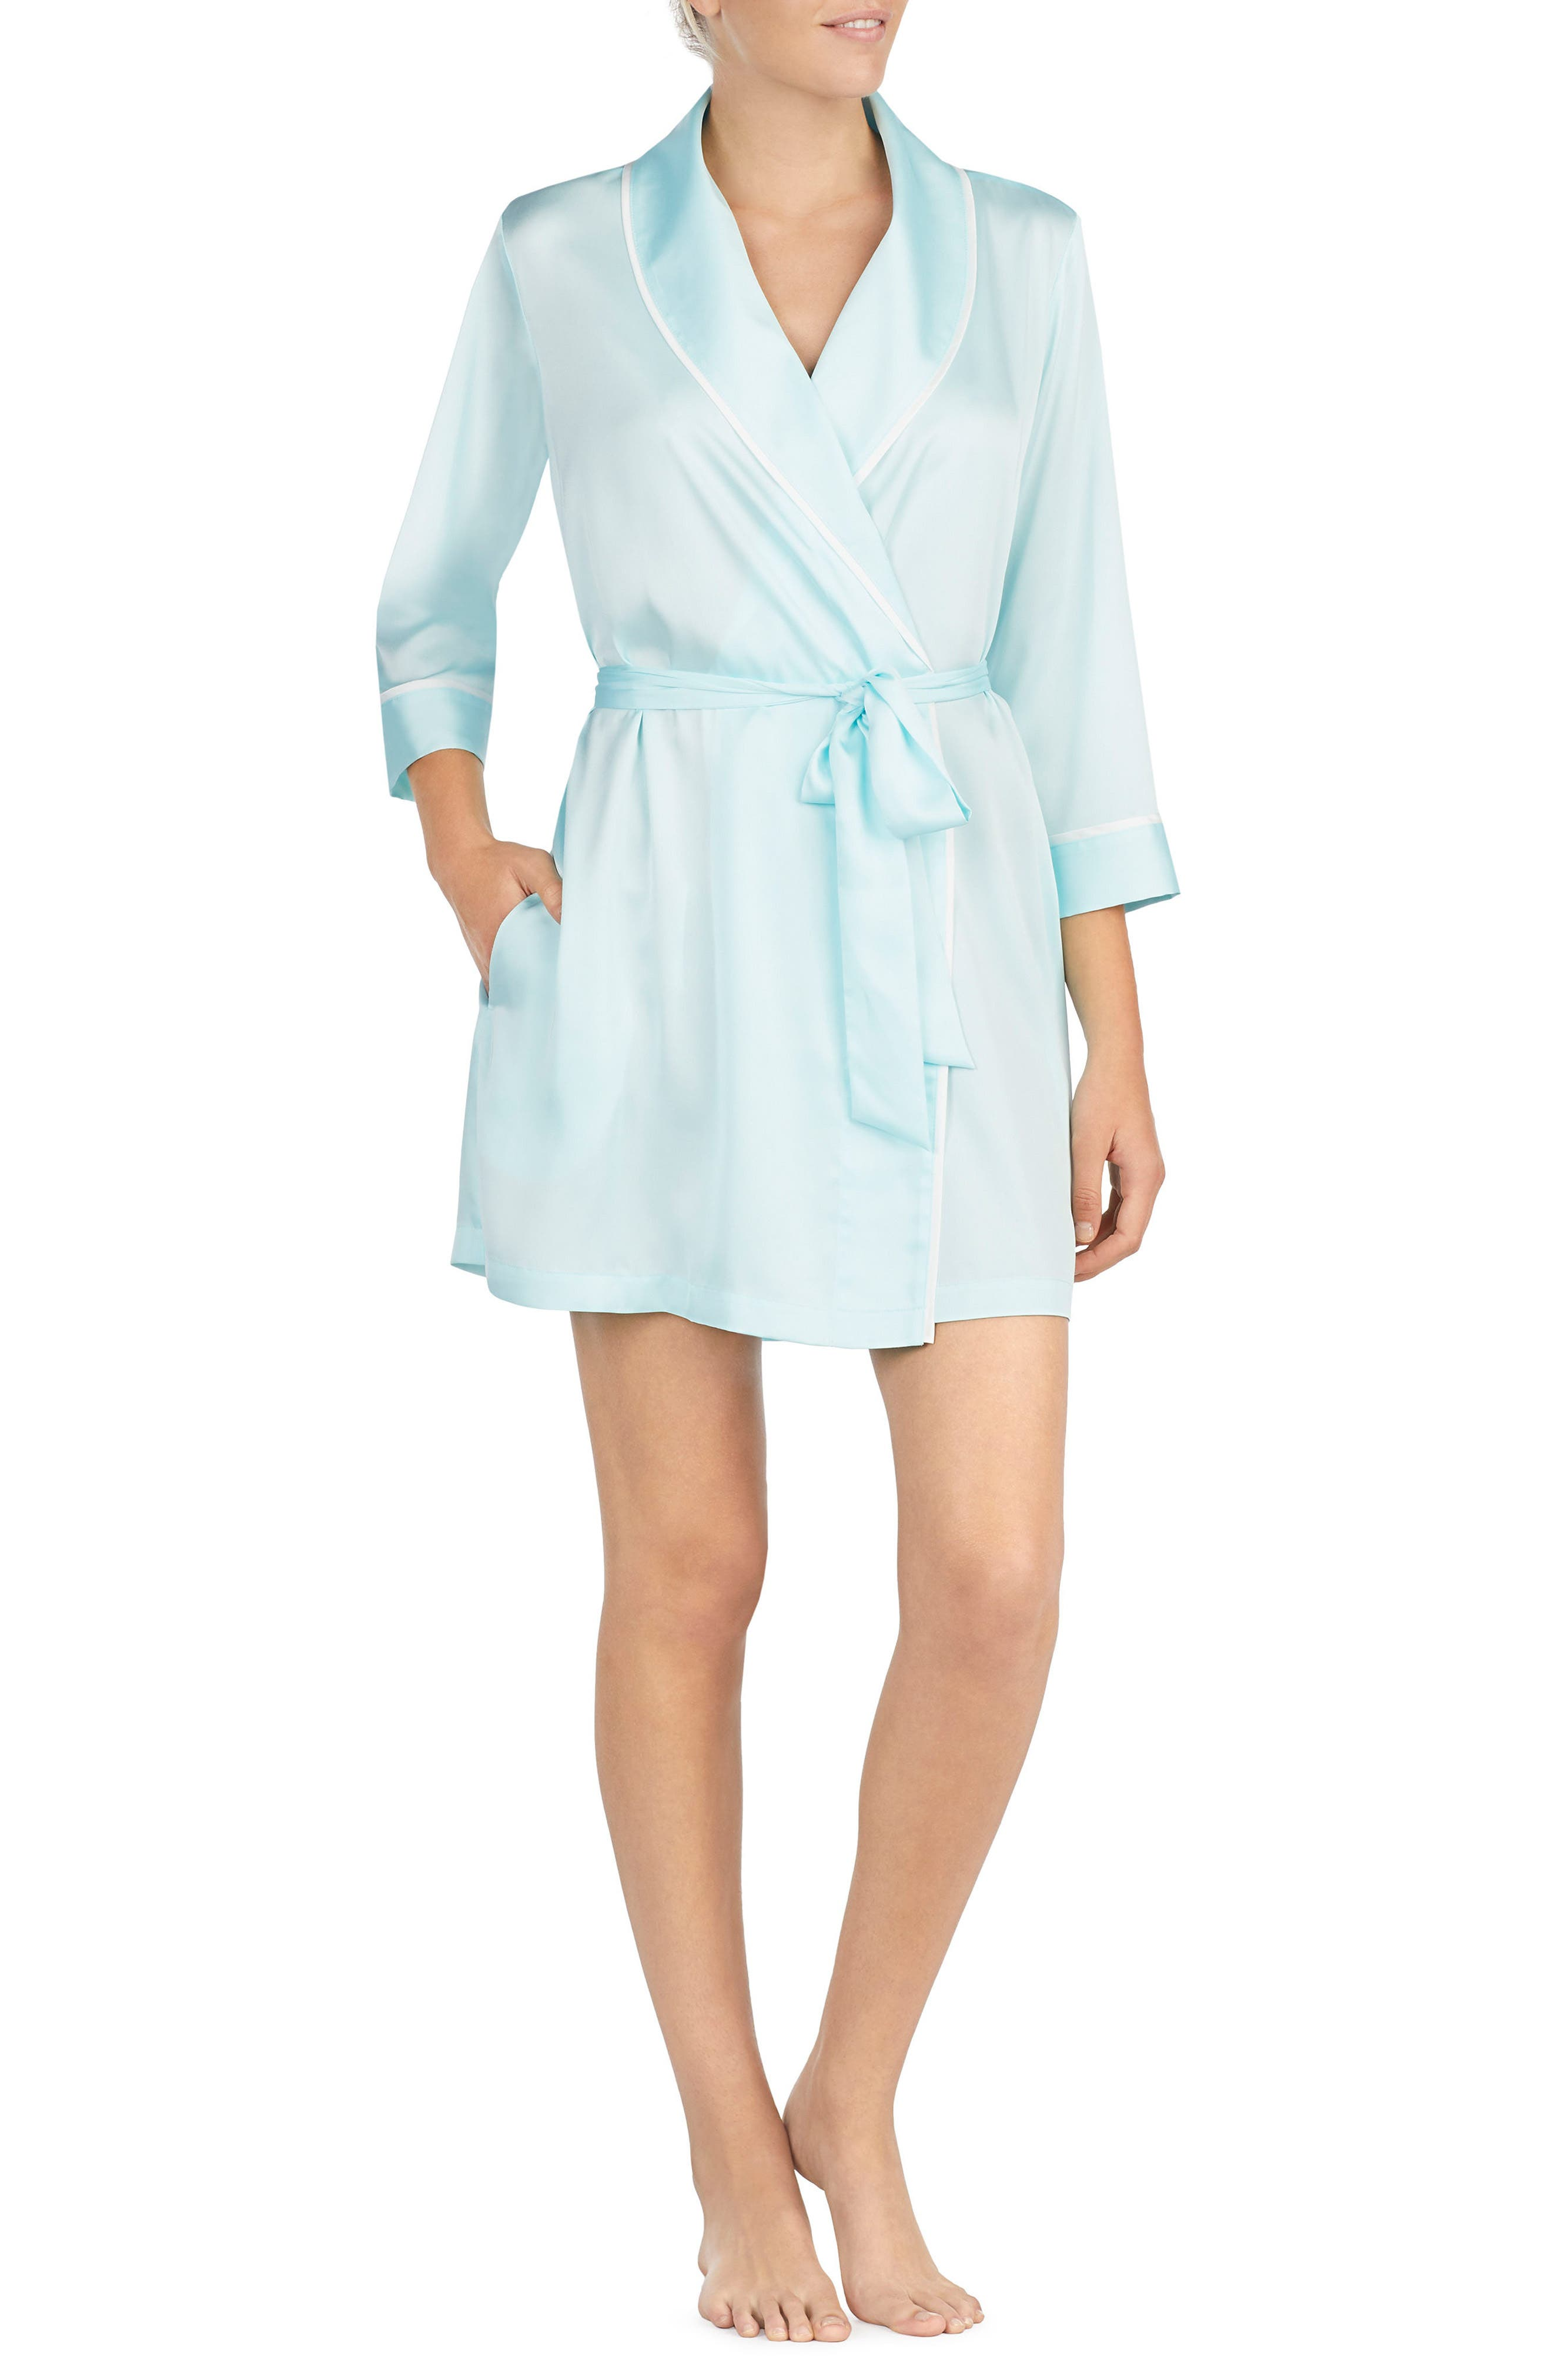 happily ever after charmeuse short robe,                             Main thumbnail 1, color,                             405